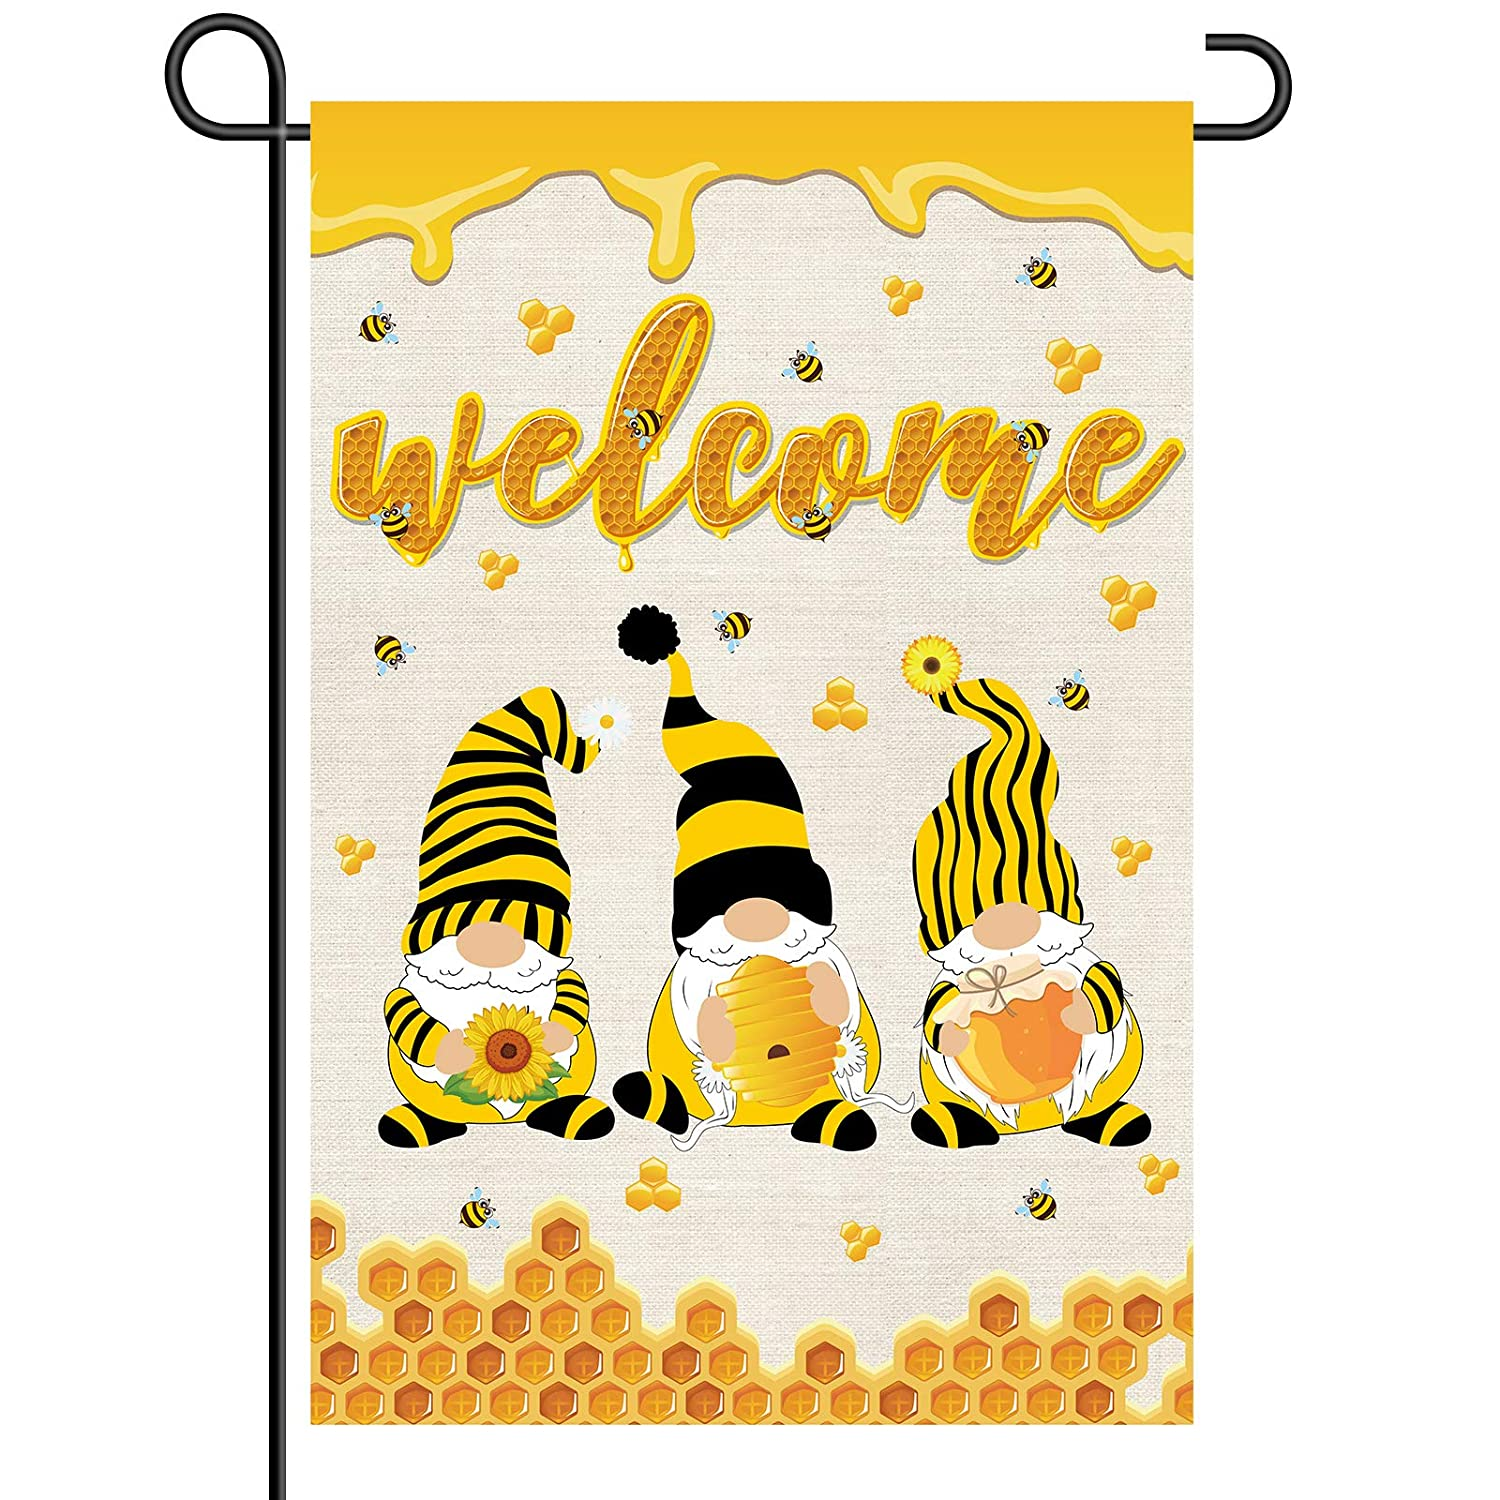 Welcome Gnome Garden Flag,Spring Summer Bee Gnomes Garde Double Sided,Seasonal Holiday Welcome Gnome Outdoor Garden Decoration,12.5 x 18 Inch